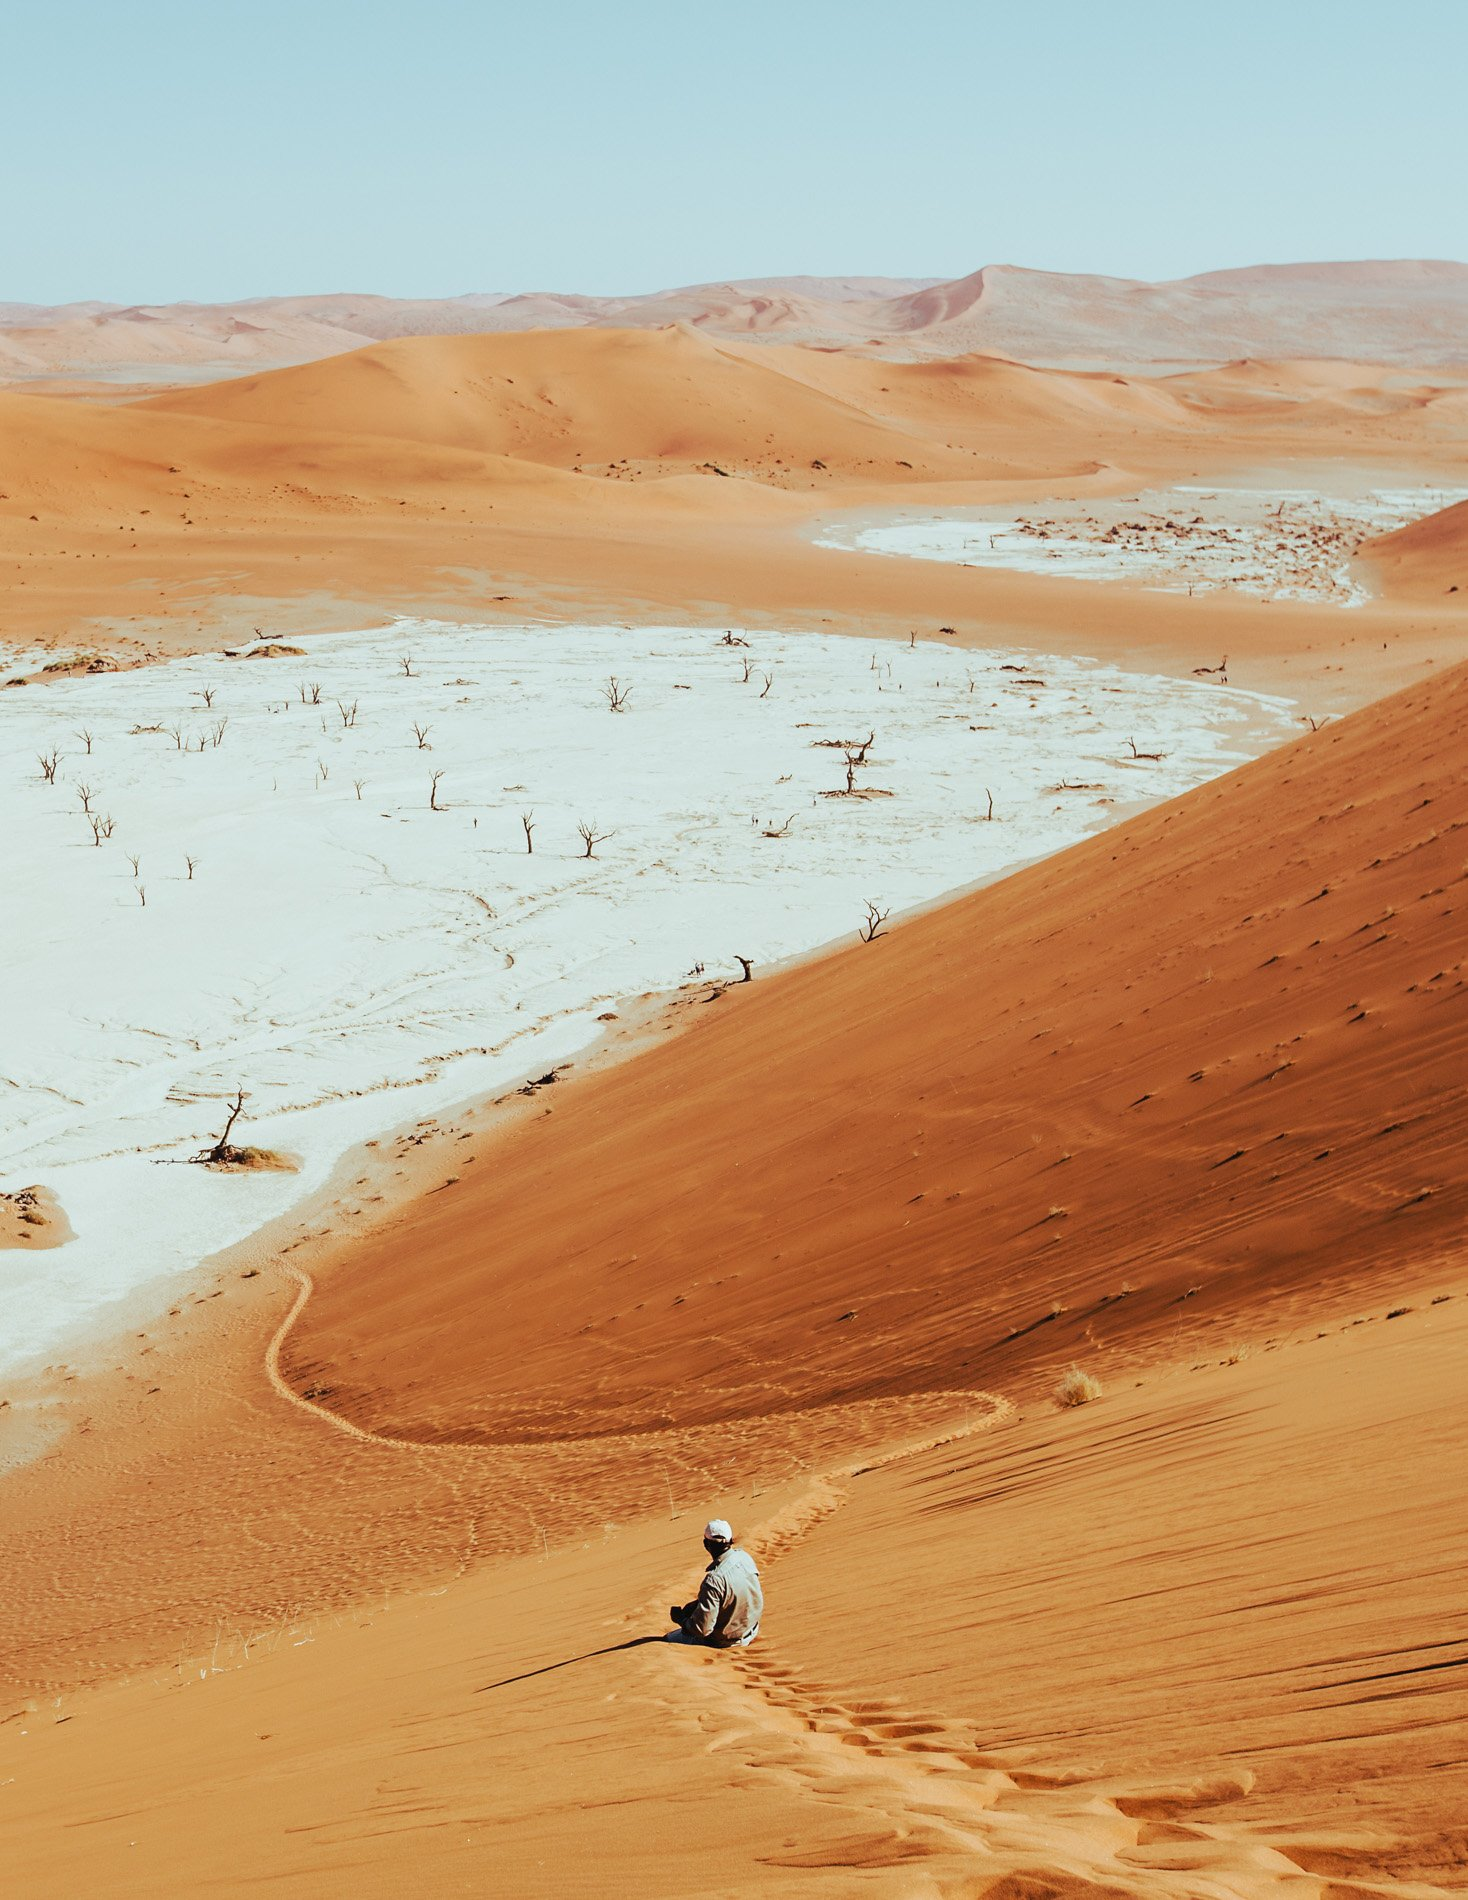 red sand dunes on a landscape photograph by Andrew ross